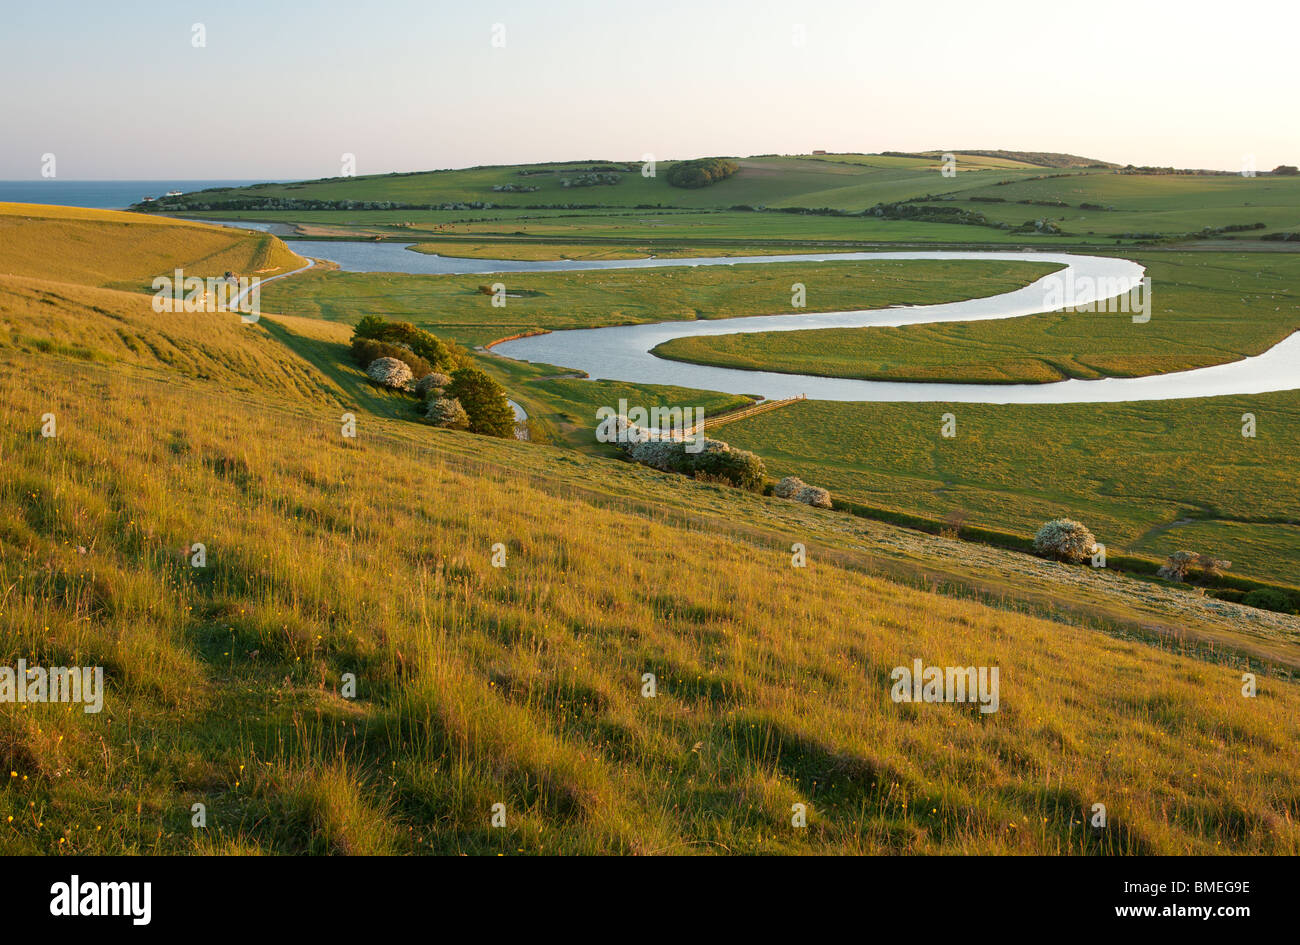 River Cuckmere meandering through Cuckmere Haven near Seaford, East Sussex, England, UK Stock Photo